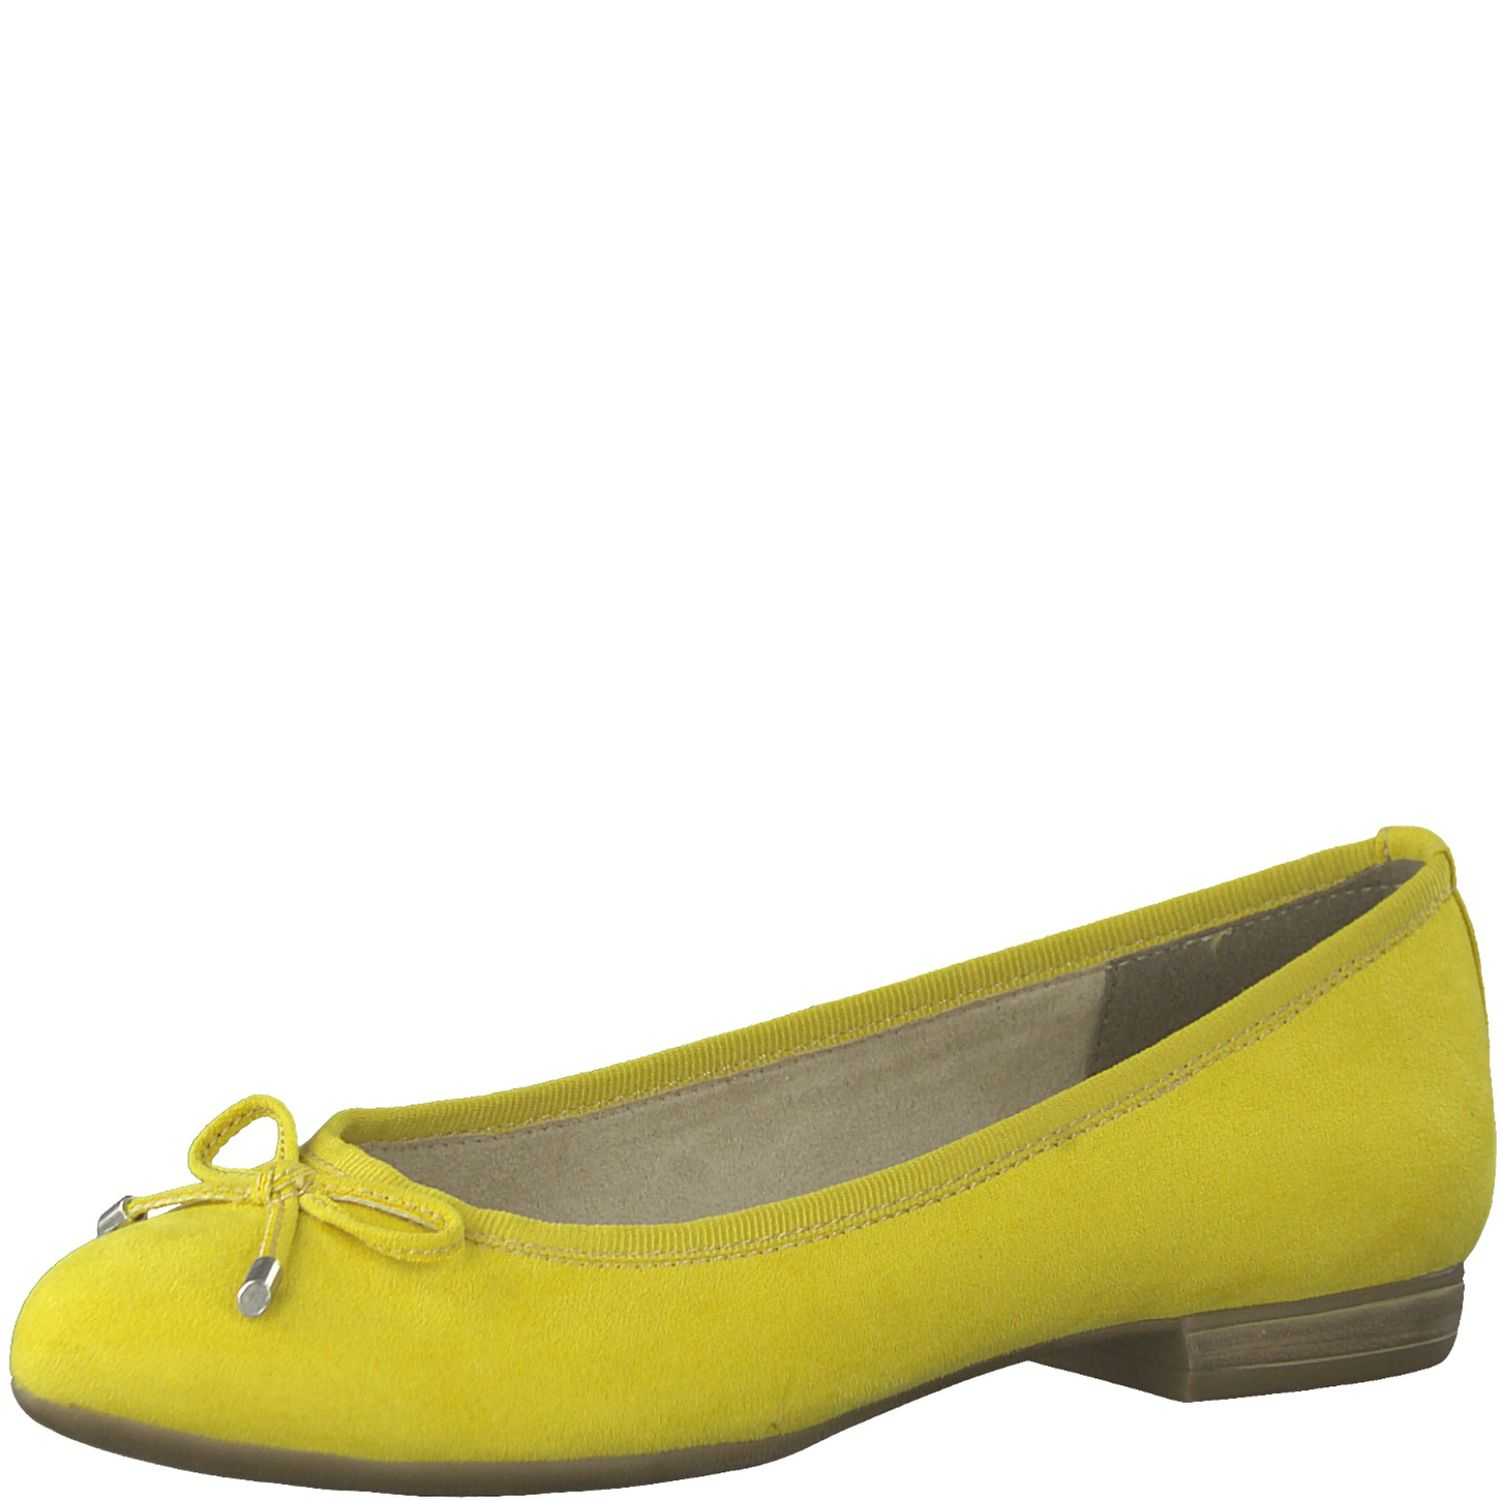 Details about Marco Tozzi 2 22135 32 Ladies Ballerina Slippers Yellow